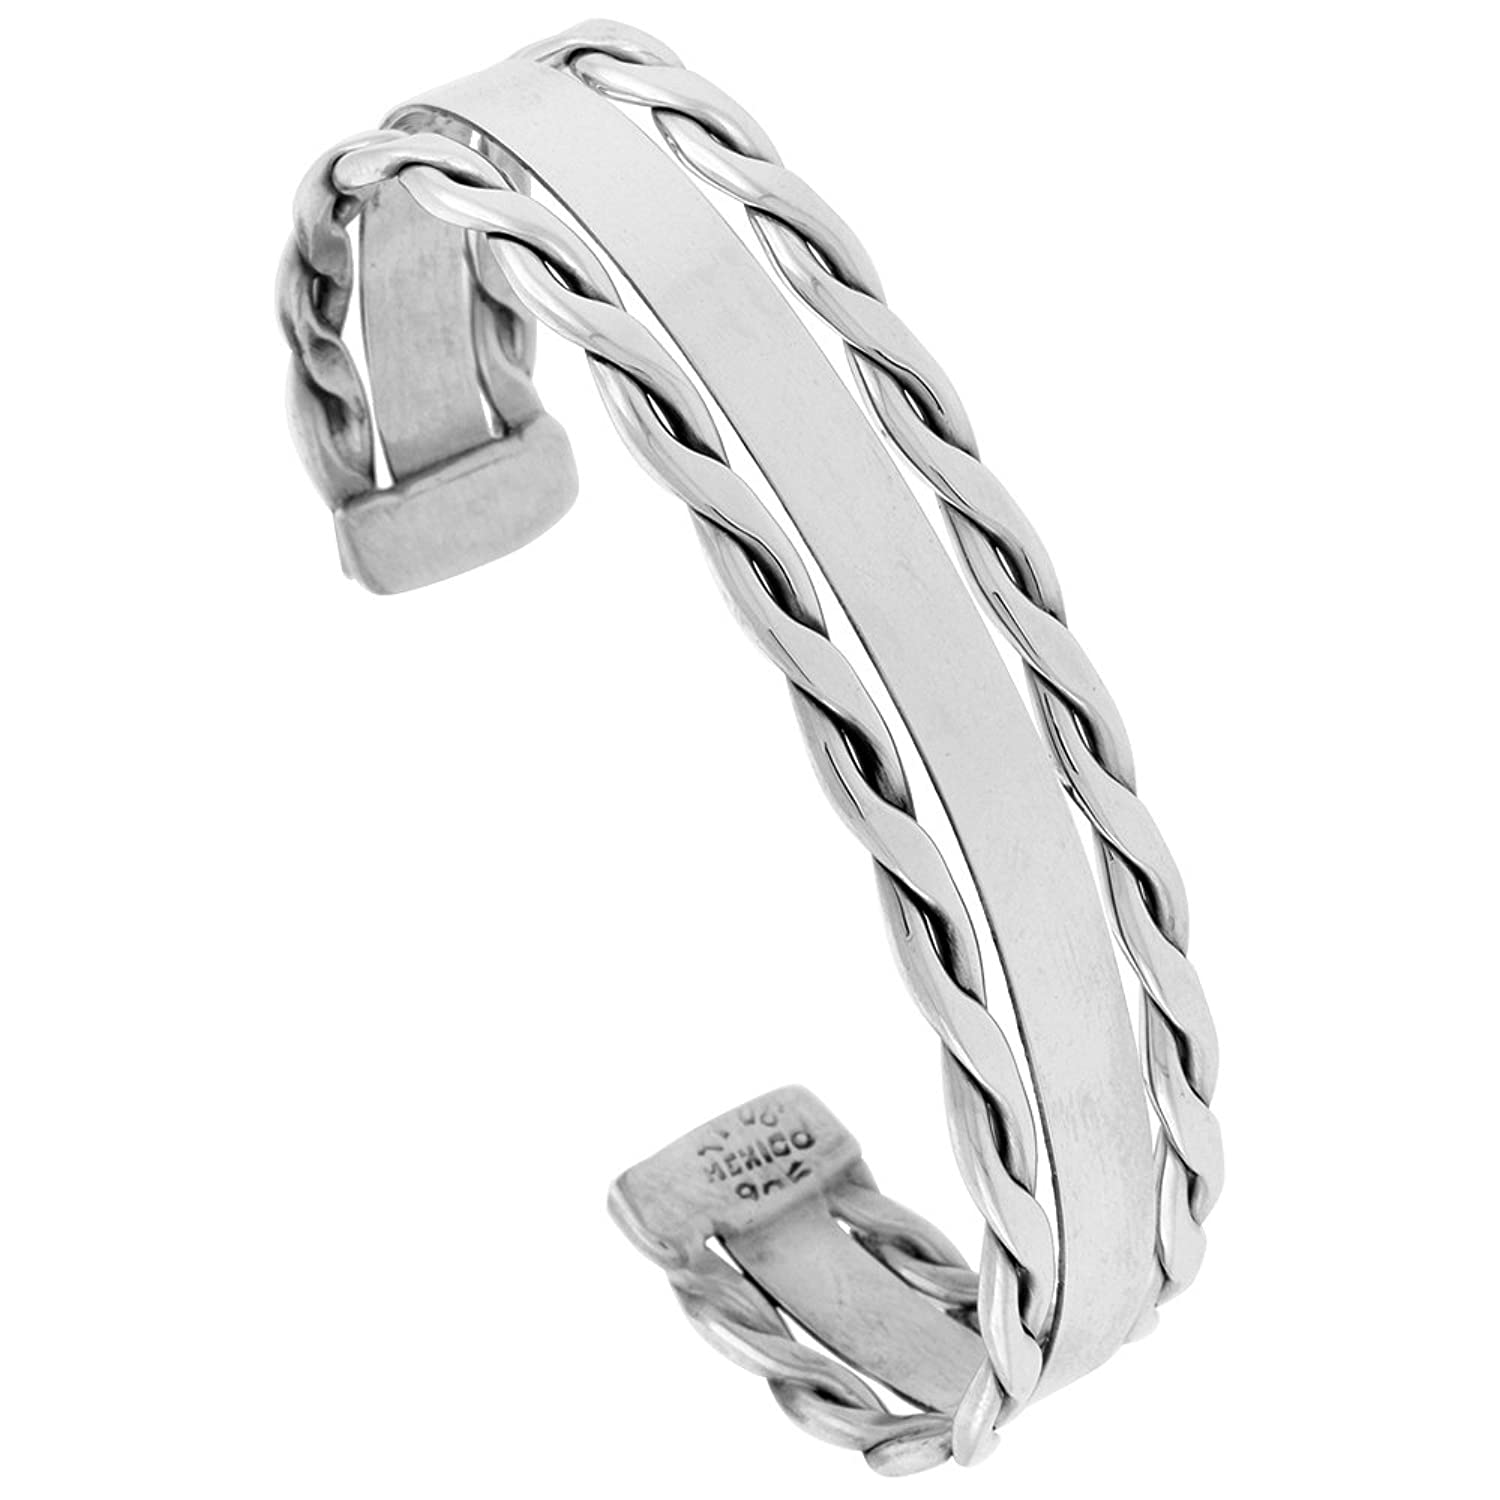 Sterling Silver Cuff Bracelet Flat Wire with Rope Edge Handmade 7.25 inch